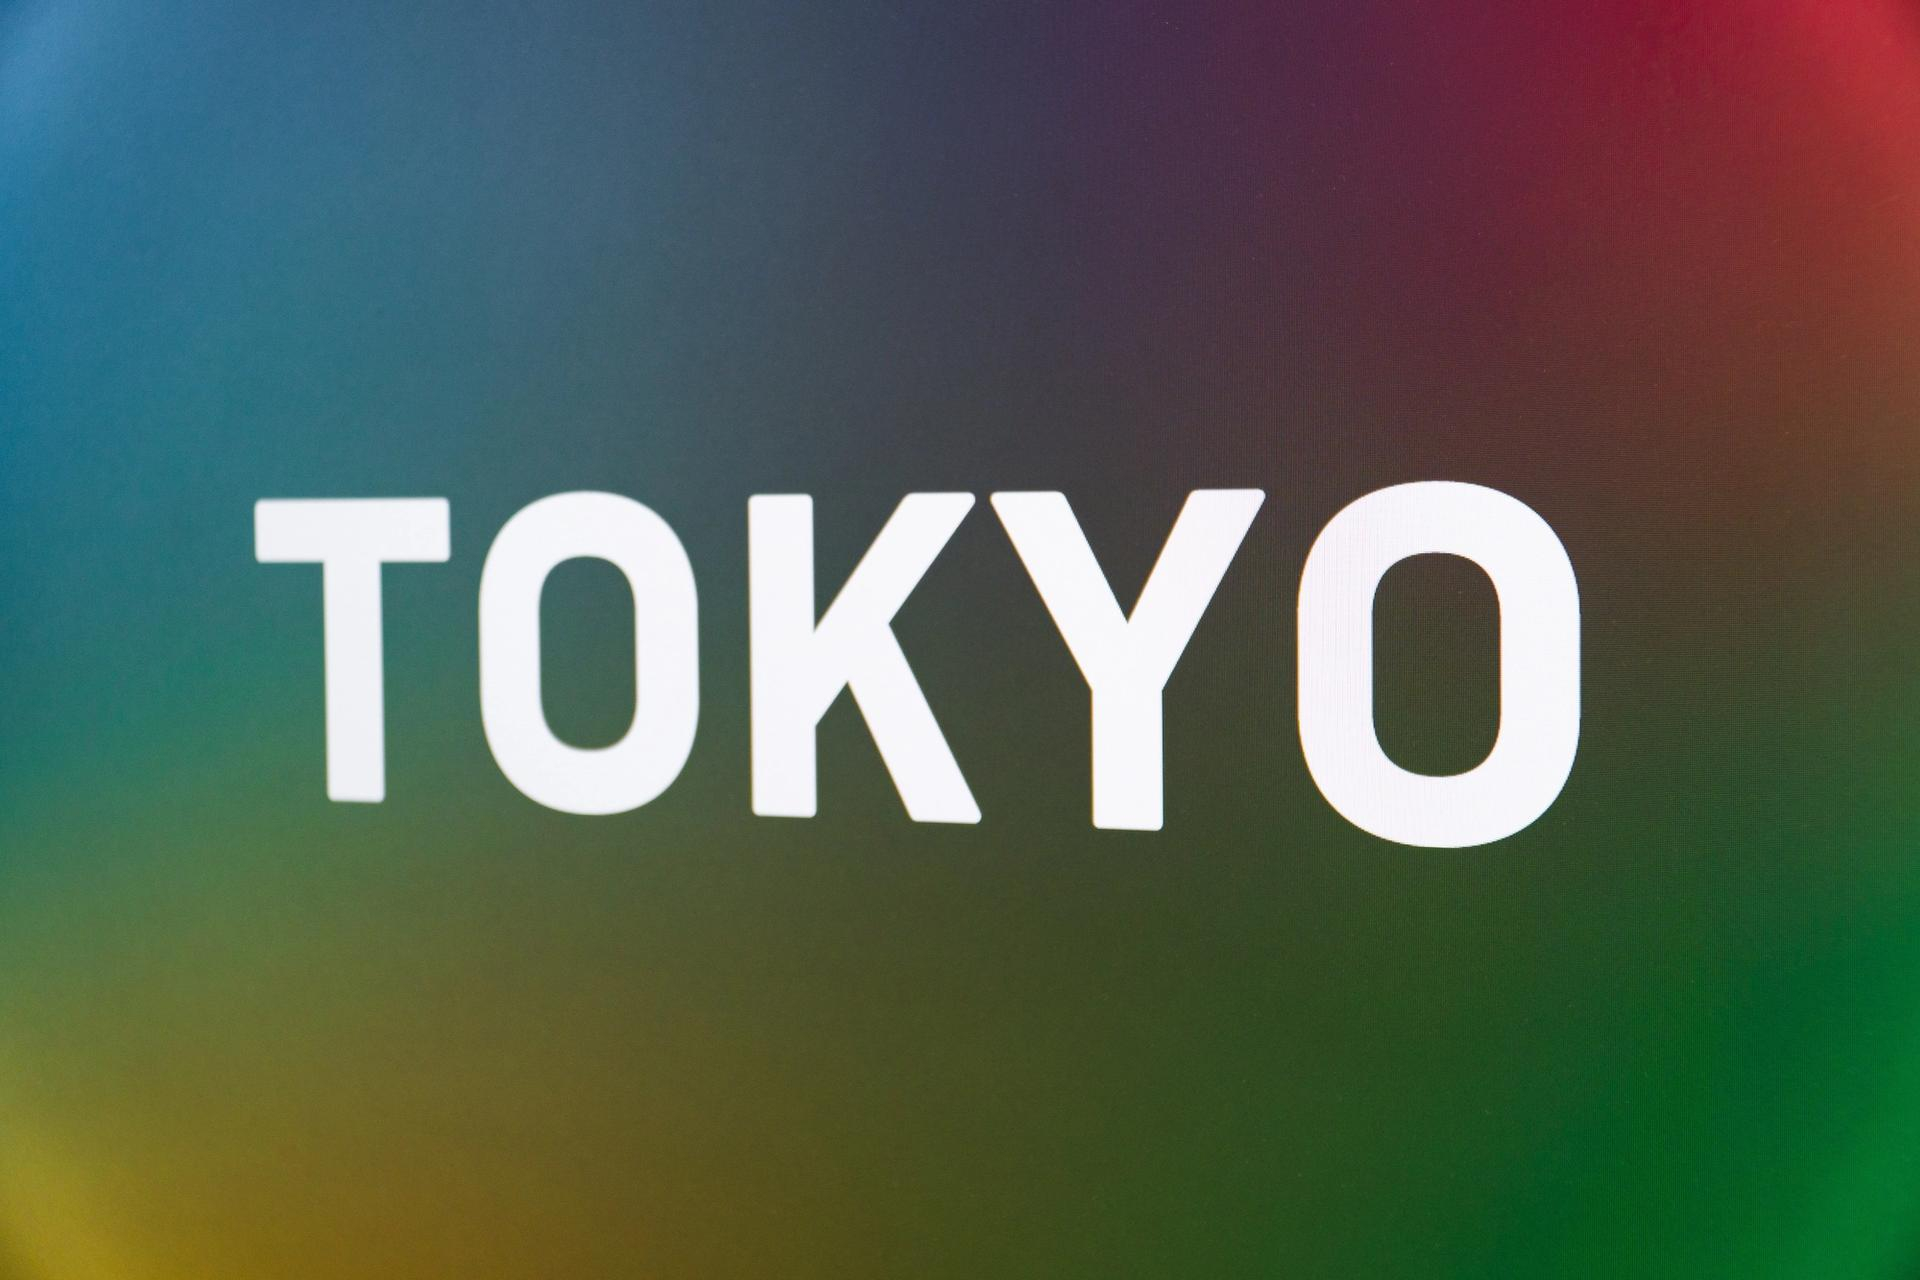 """Billboard-like multi-colored sign (blues, greens, purple and red), with uppercase white letters, spelling out """"TOKYO."""""""